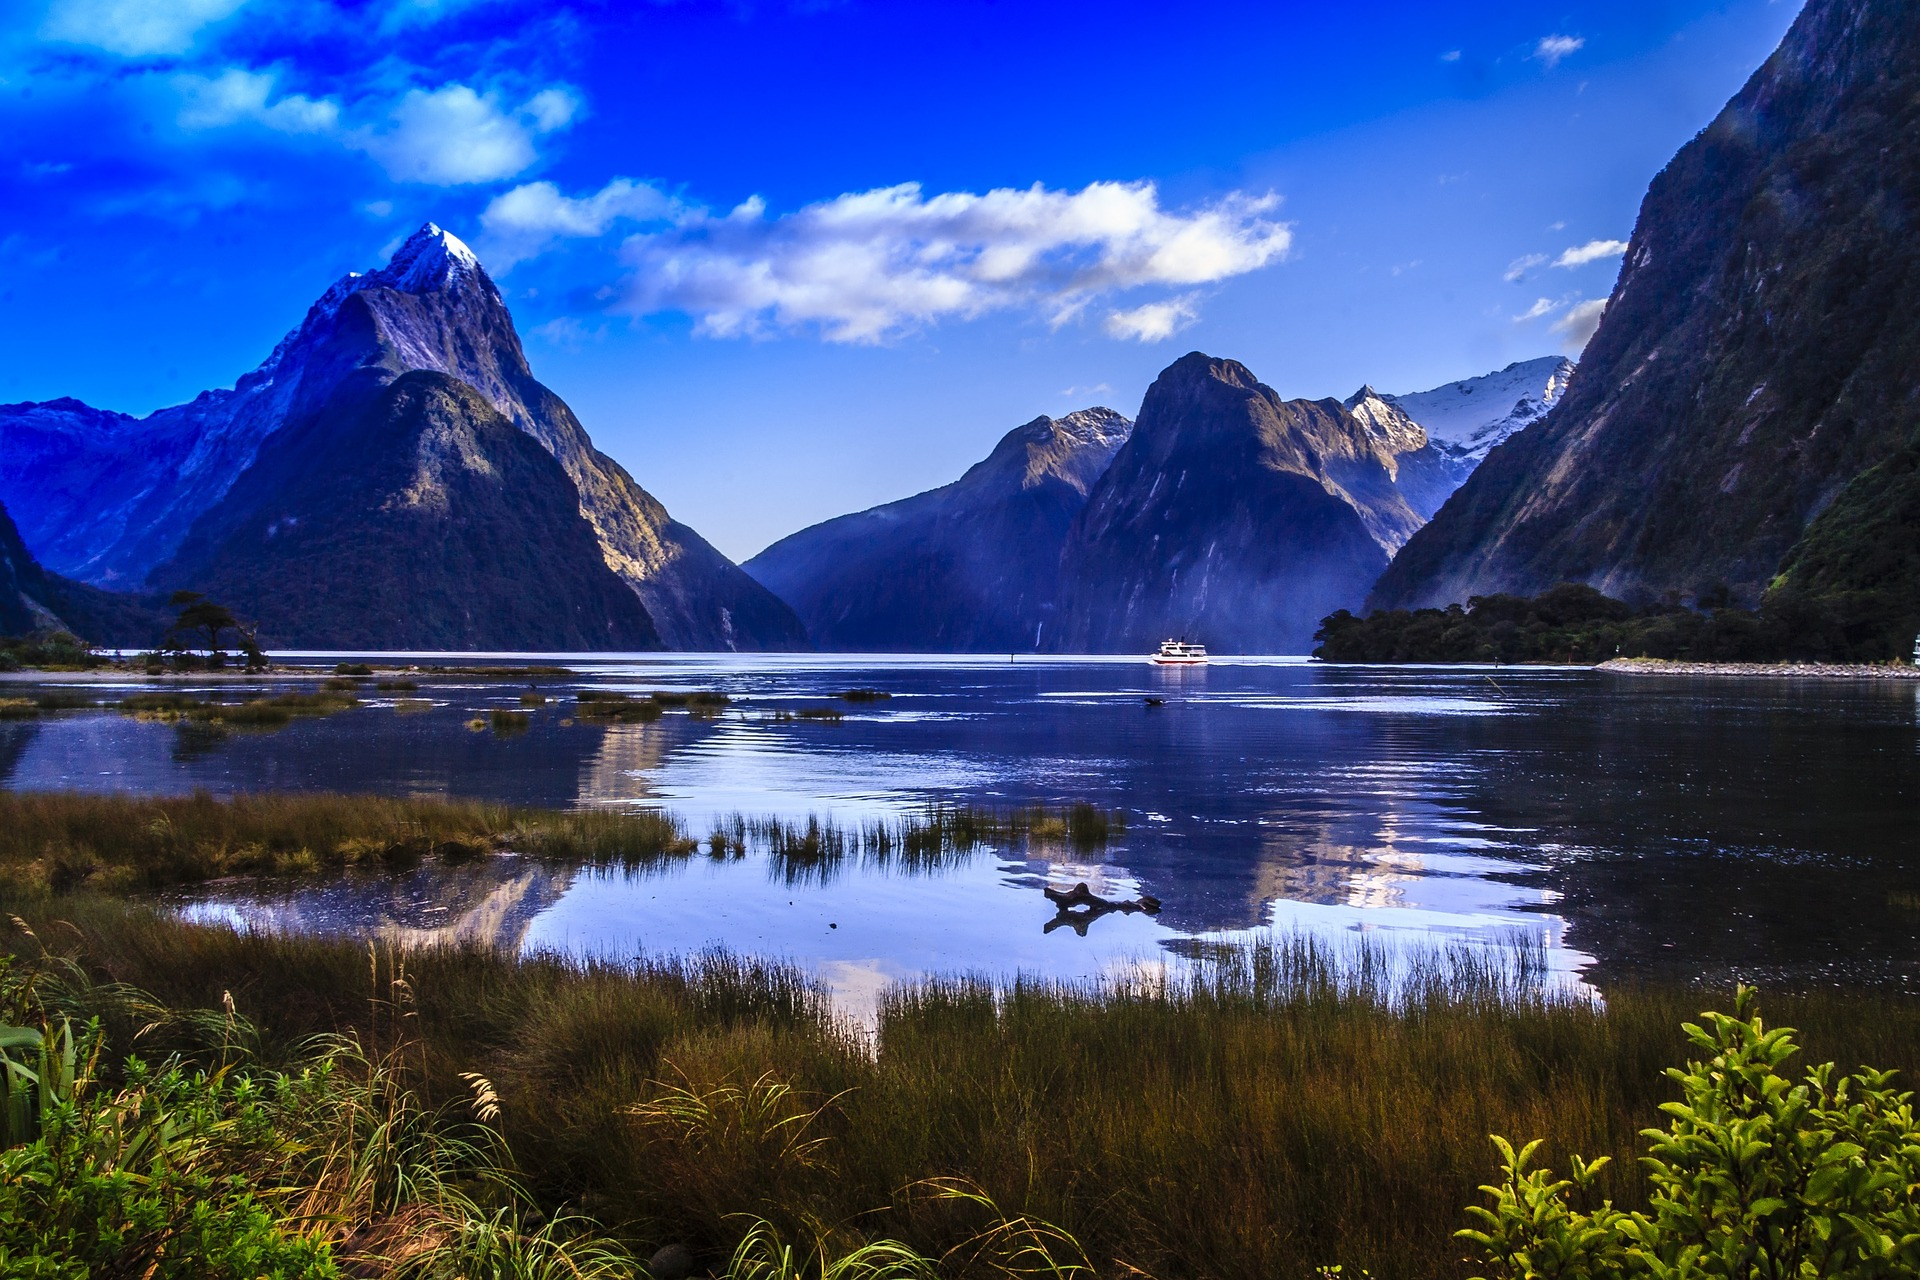 Mitre Peak, Milford Sound, Fiordlands National Park,New Zealand